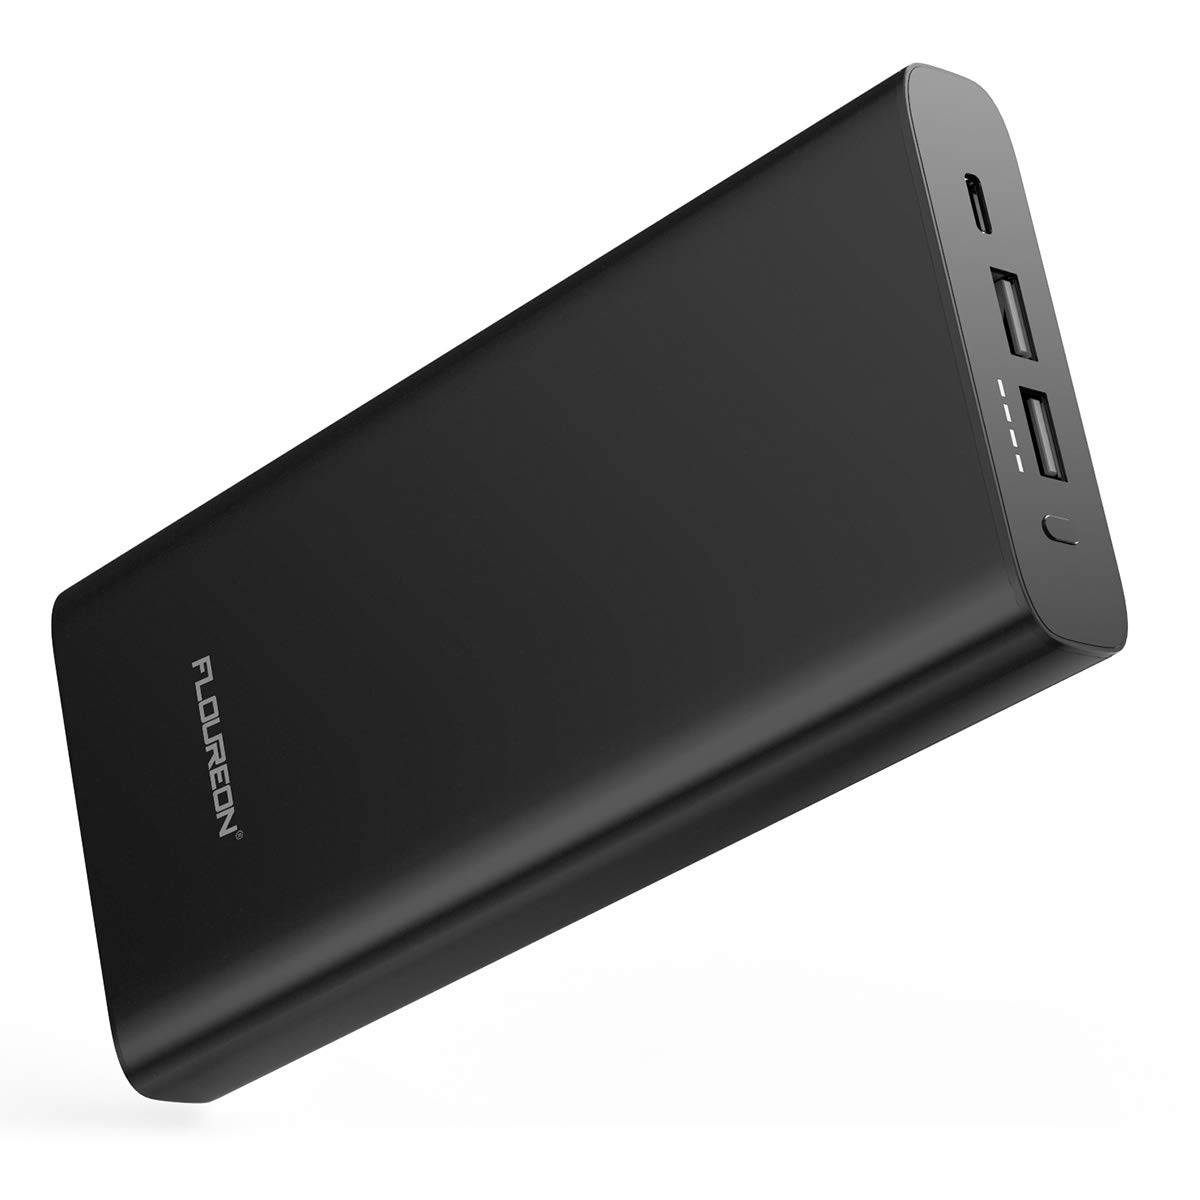 FLOUREON Power Bank 26800mAh 60W PD Portable Charger Input & Output Type C, Quick Charge 3.0 Compatible for USB-C MacBook Air/iPad Pro 2018, Nintendo Switch, iPhone Xs/X / 8